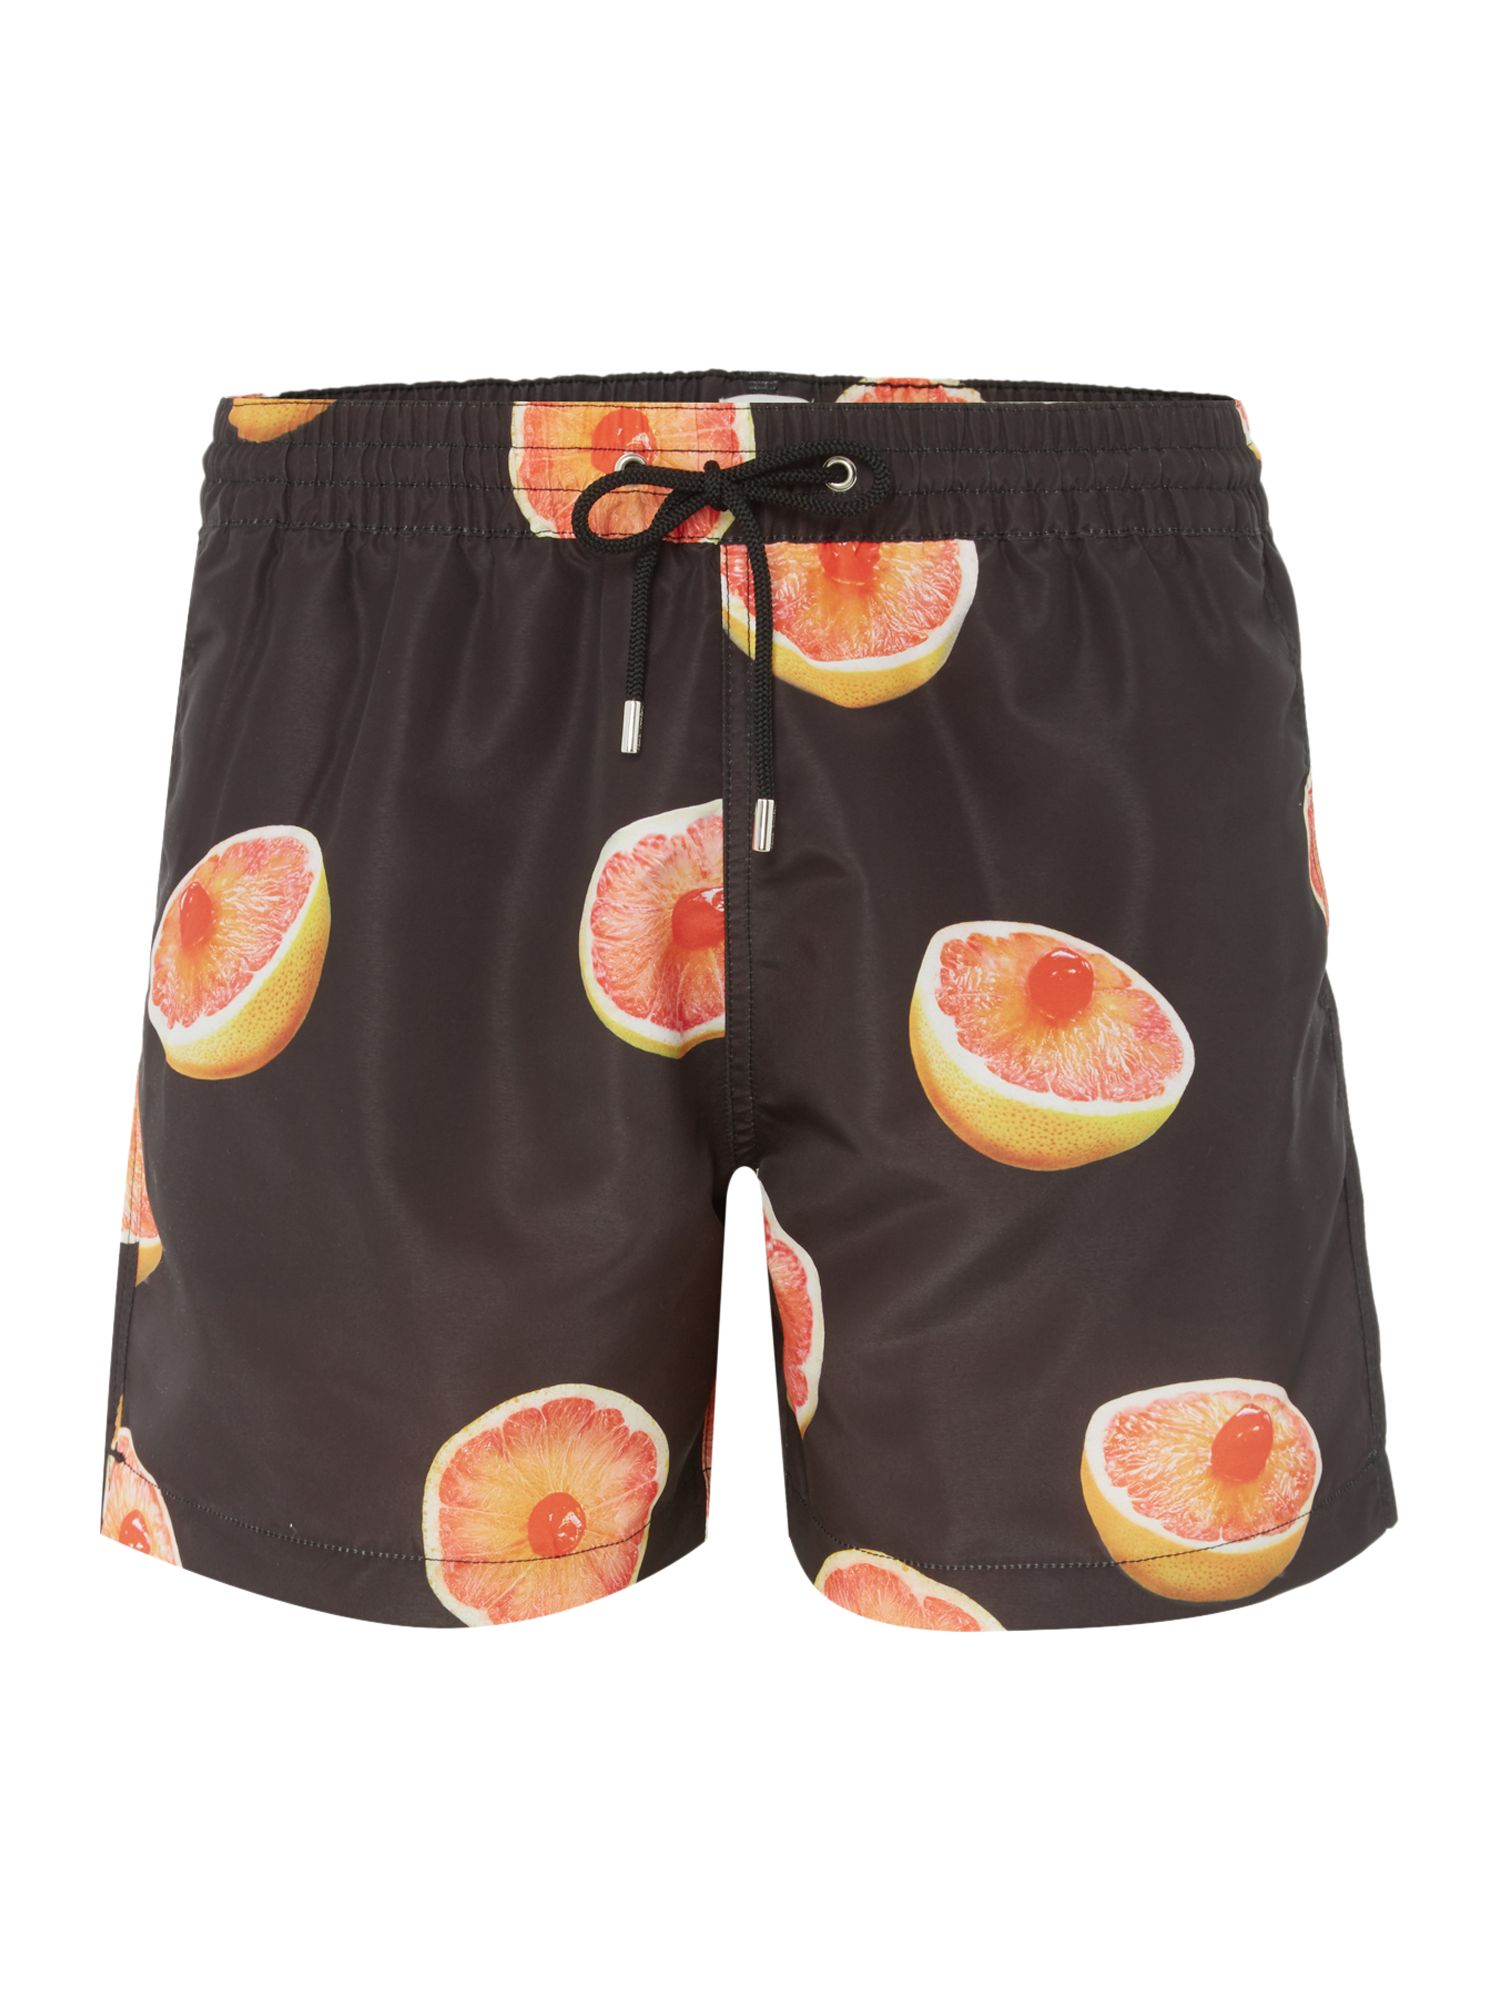 Men's Paul Smith Grapefruit Print Swim Short, Black